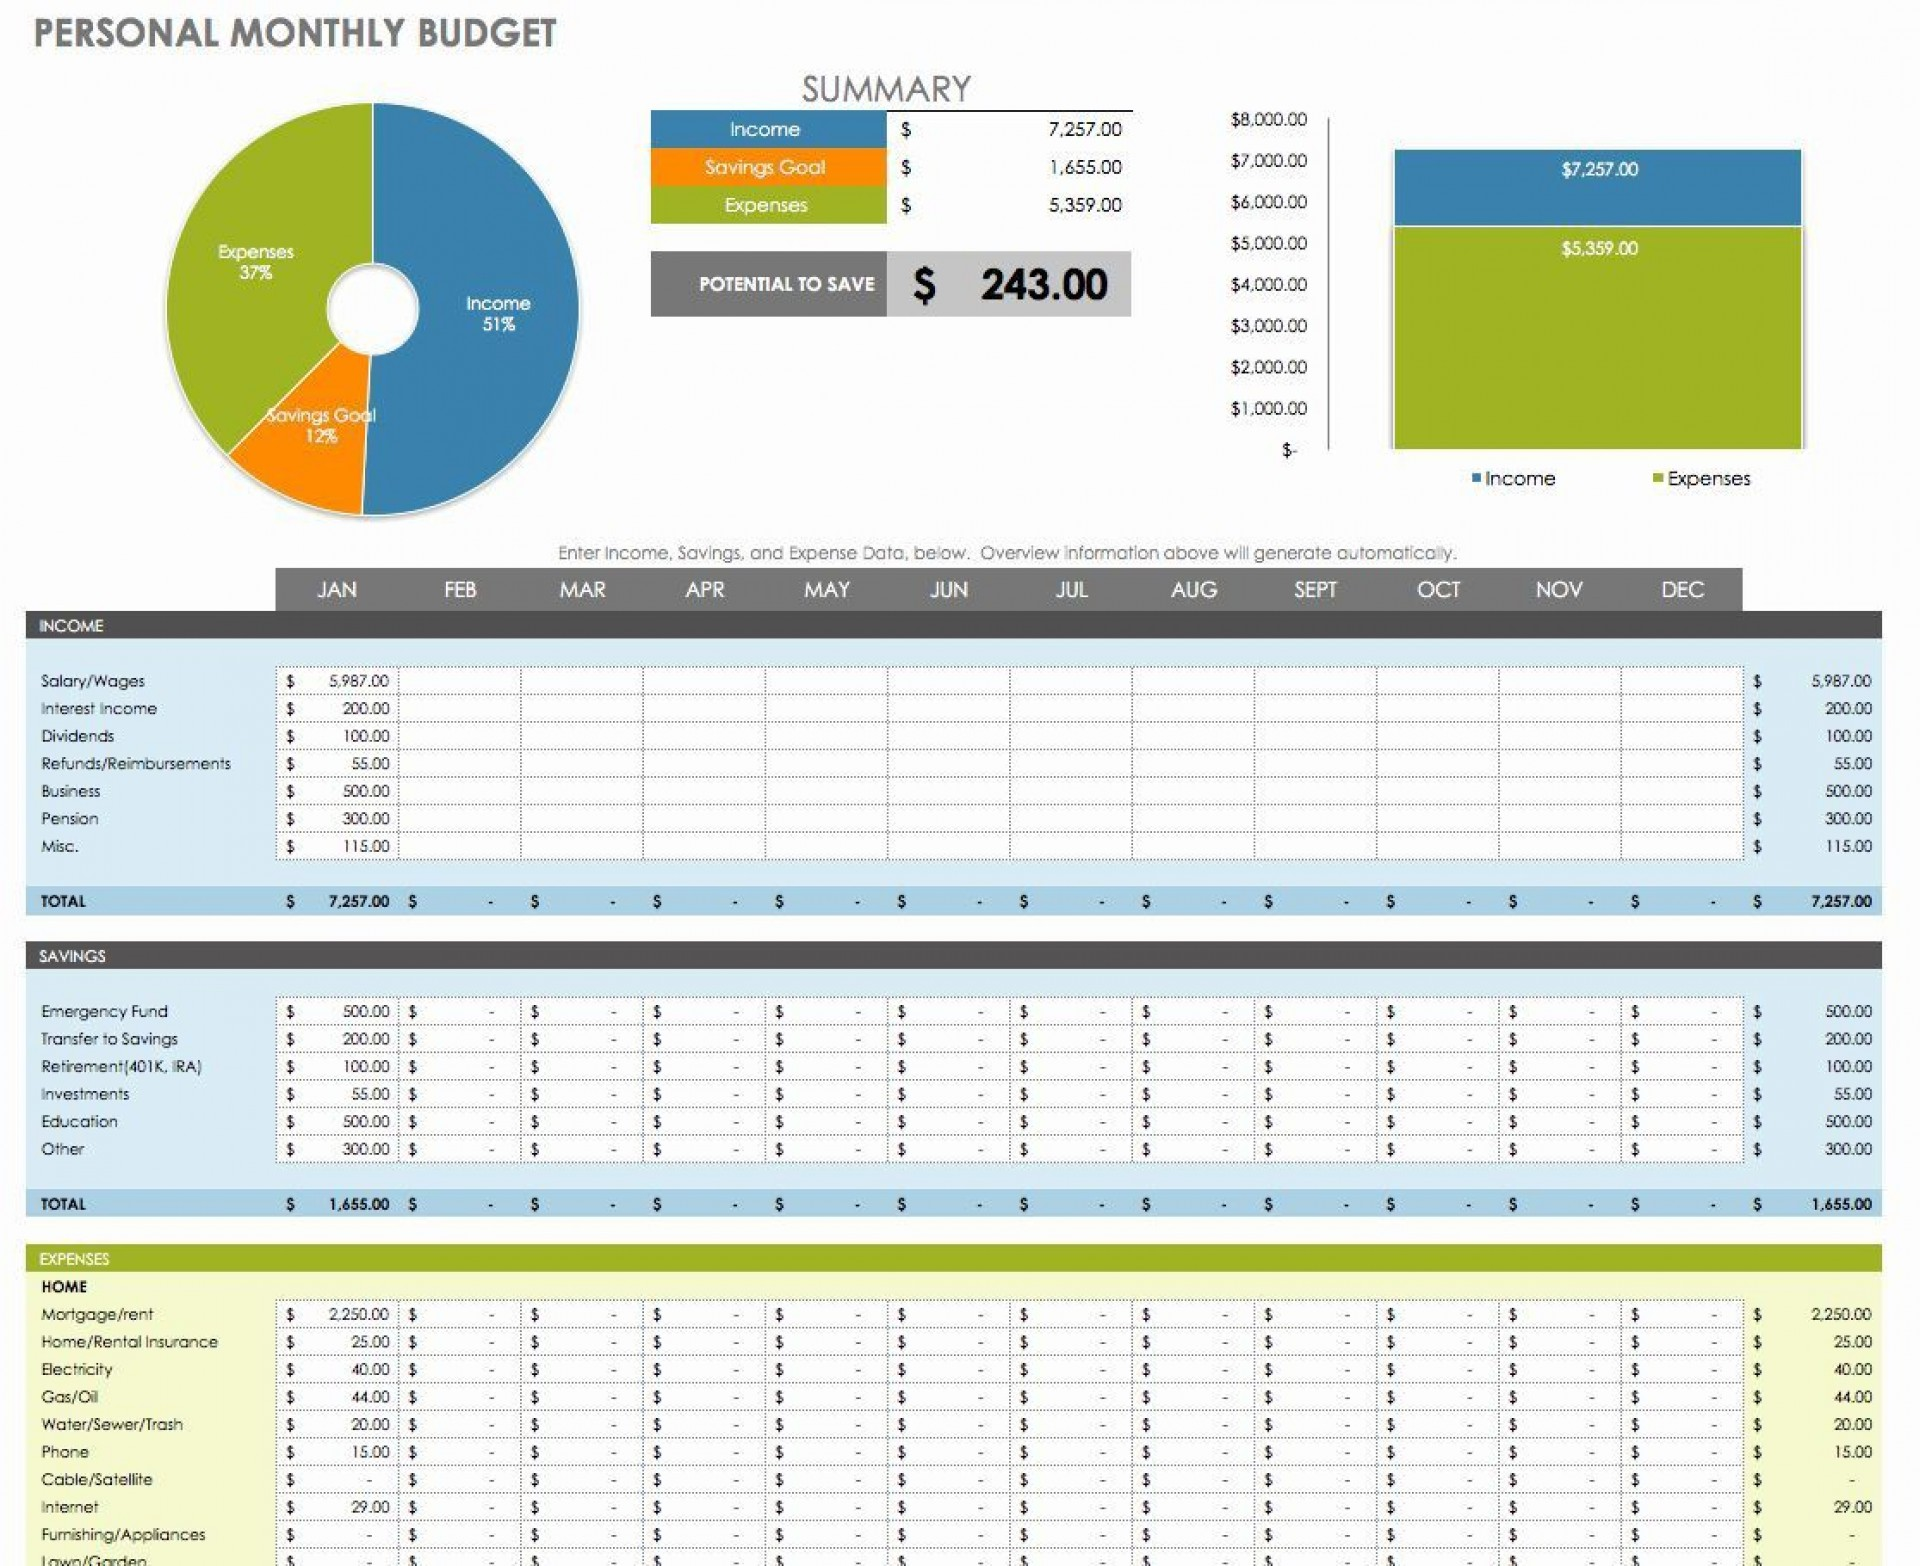 000 Imposing Personal Finance Template Excel Idea  Spending Expense Free Financial Planning India1920